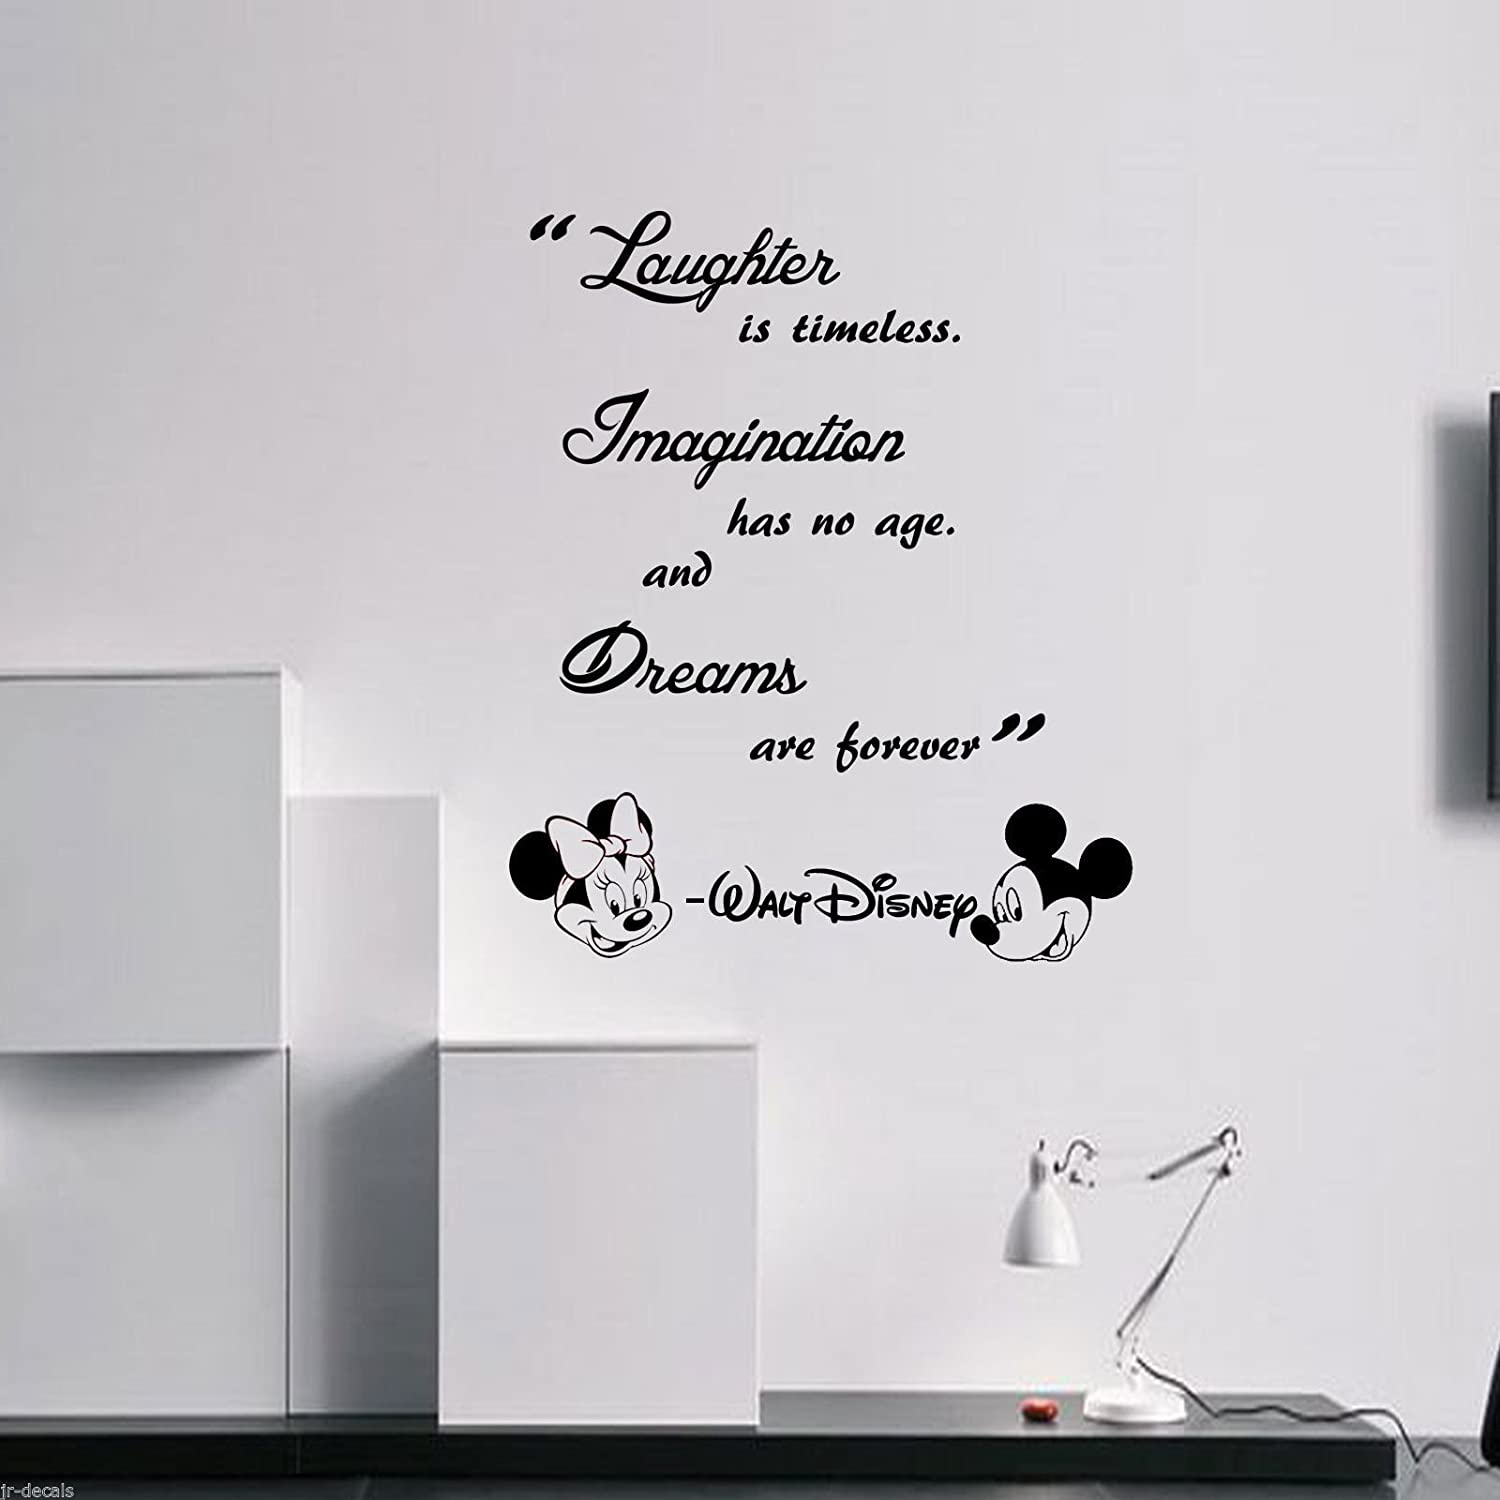 Laughter is timeless walt disney wall quote mickey minnie vinyl laughter is timeless walt disney wall quote mickey minnie vinyl decals removable wall stickers amazon handmade amipublicfo Choice Image